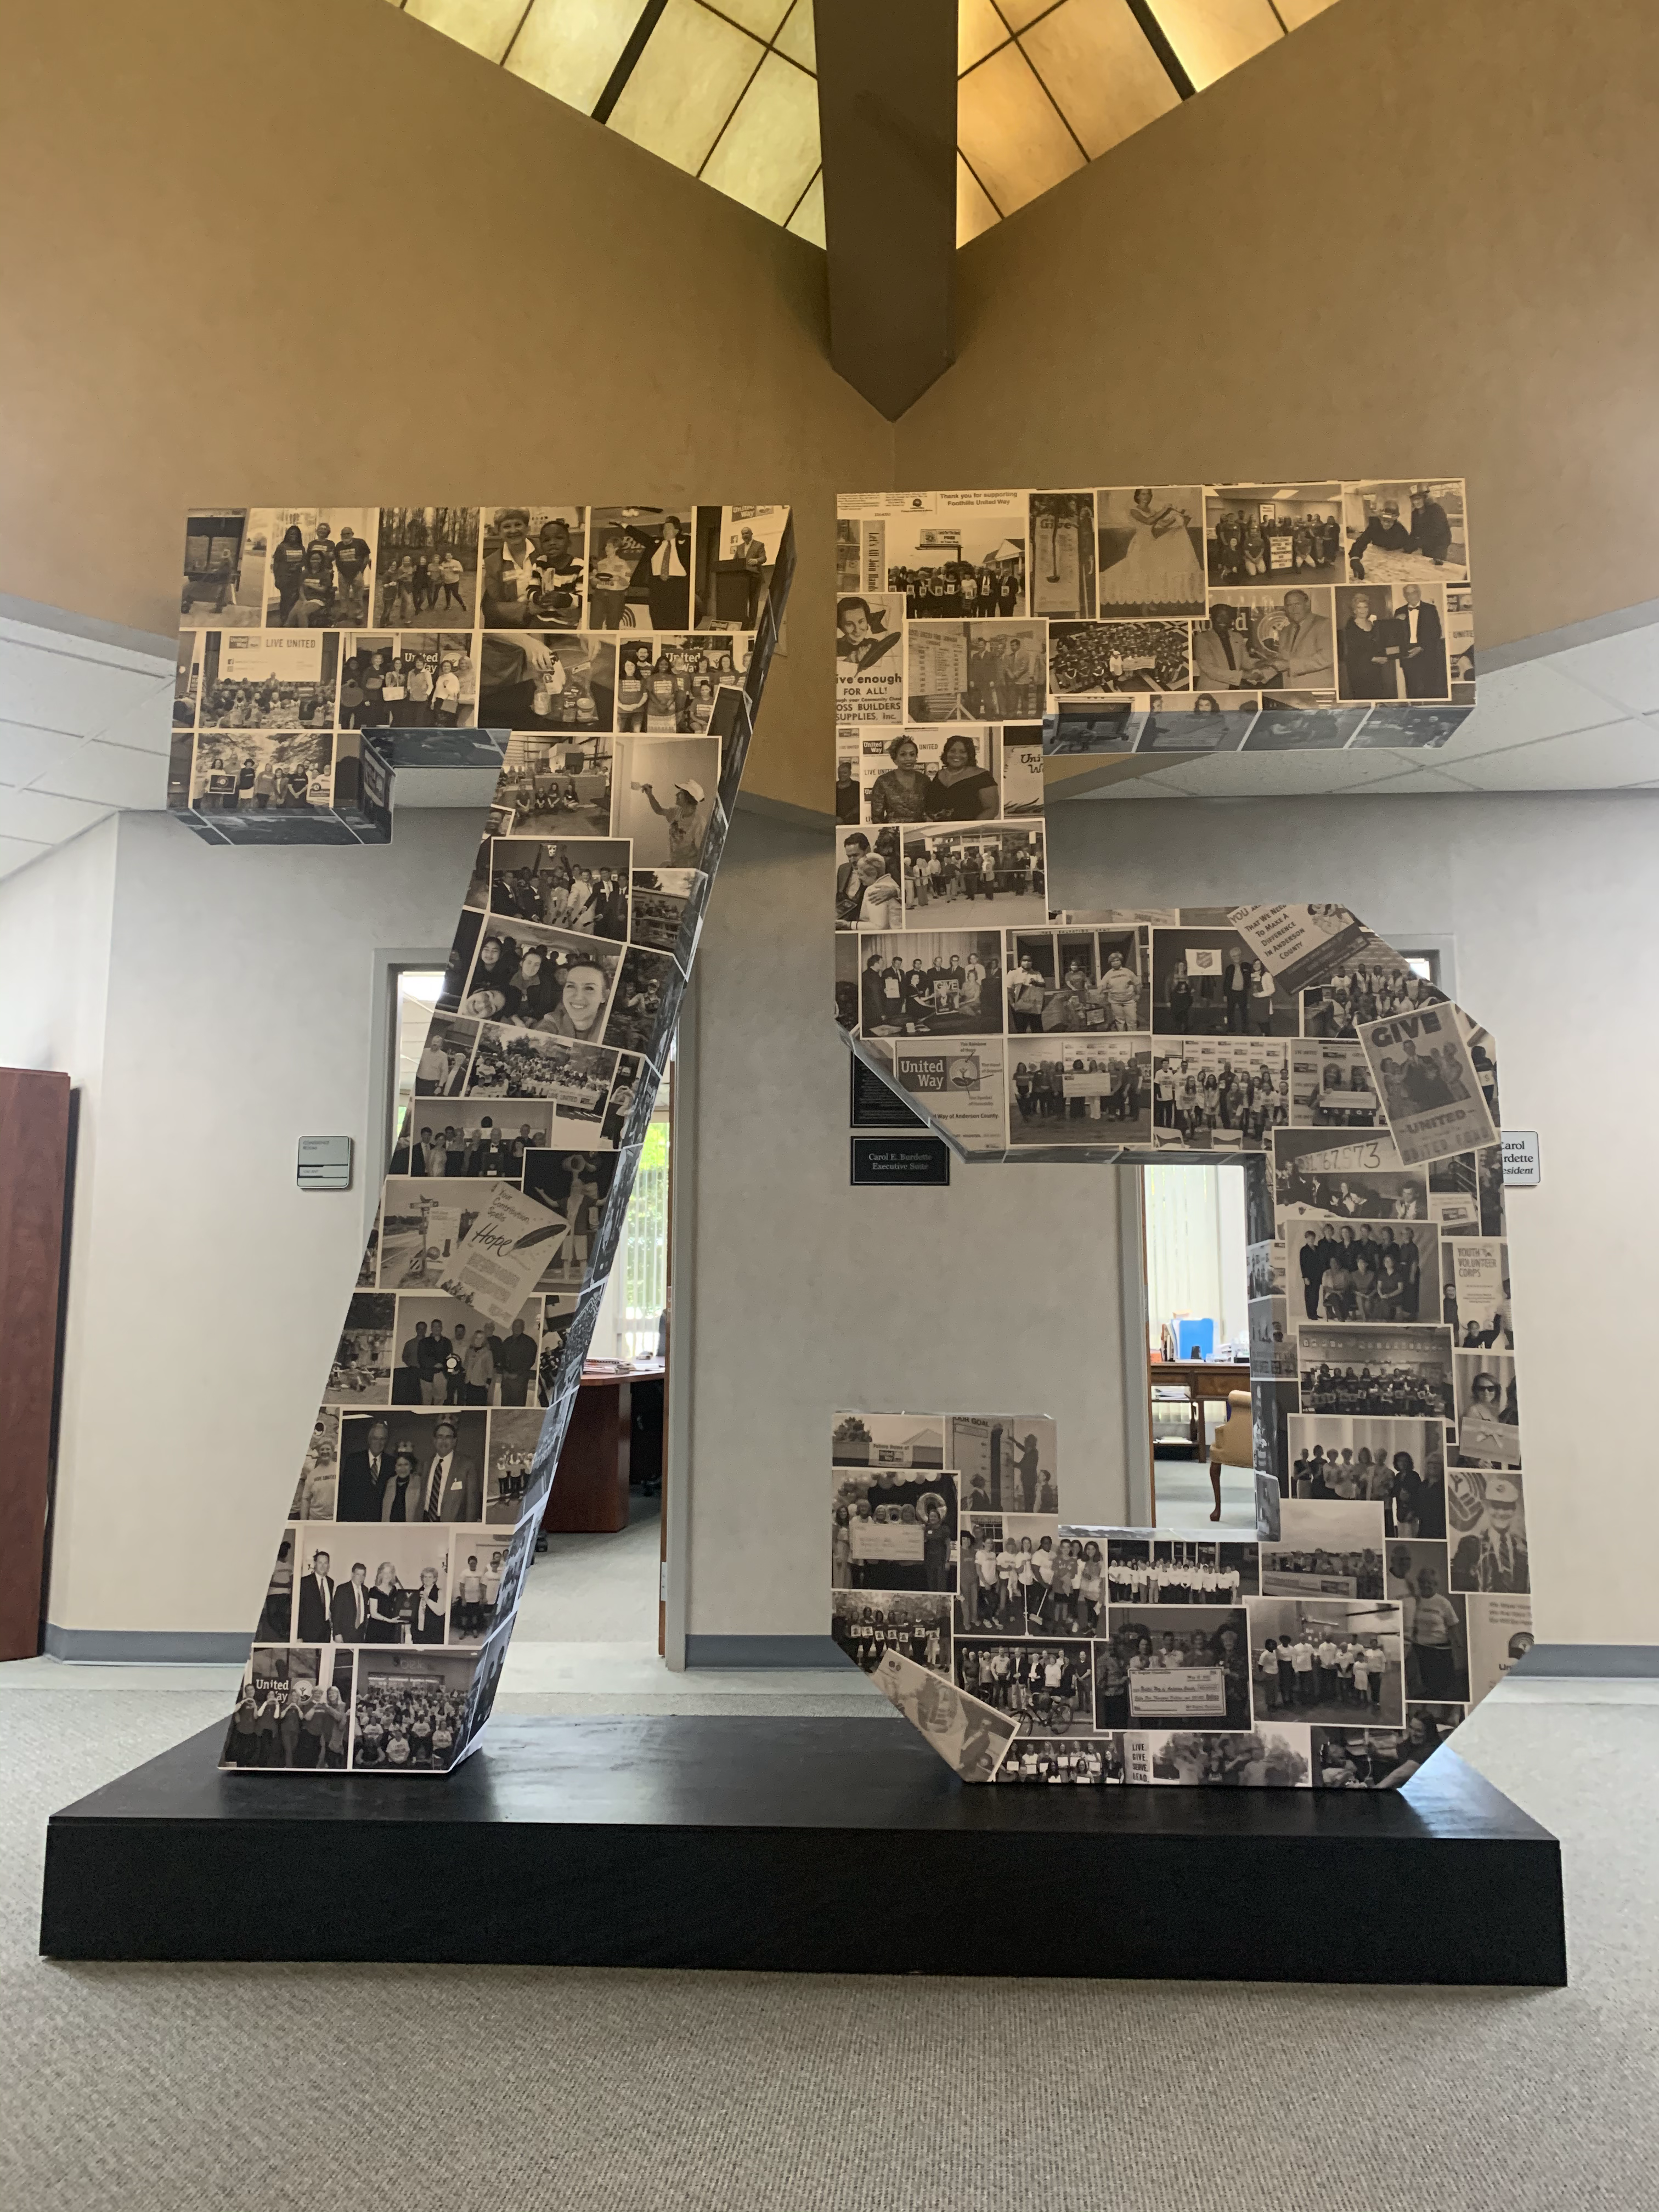 8' letters built with custom stand